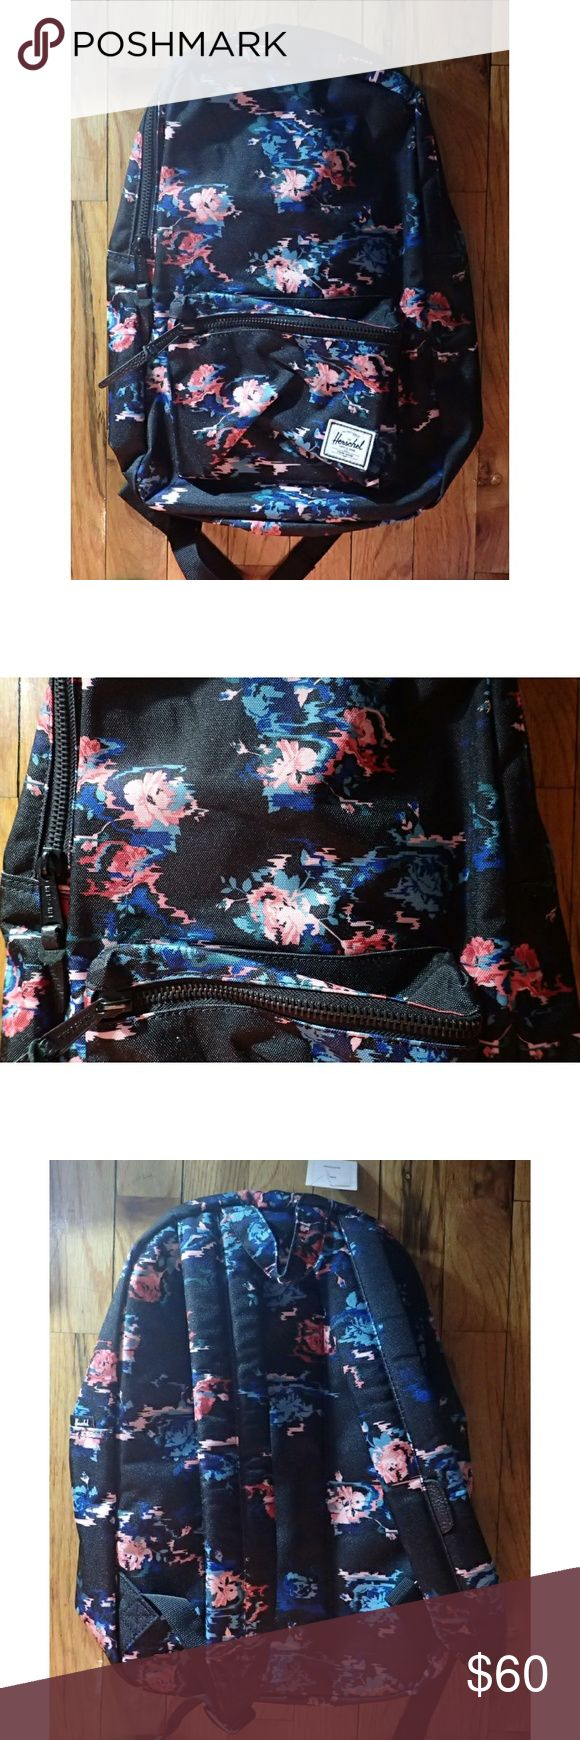 """Herschel Floral Black Backpack - New 🆕 Brand new, never worn, no damage. Approximately 16.5""""x11""""x5"""".  👍 Smoke-free, pet-free household.   🚫 No trades/swaps!  🚫 No holds!  🚫 No low-balling!  🚫 No PayPal!   ✔ Reasonable offers welcomed! Please use the offer button so I know you are serious about the item! I will not respond to price negotiations via comments.  ✔ I love bundling! Not only will you get ONE shipping fee, I will also discount your combined total! Please ask me in the…"""